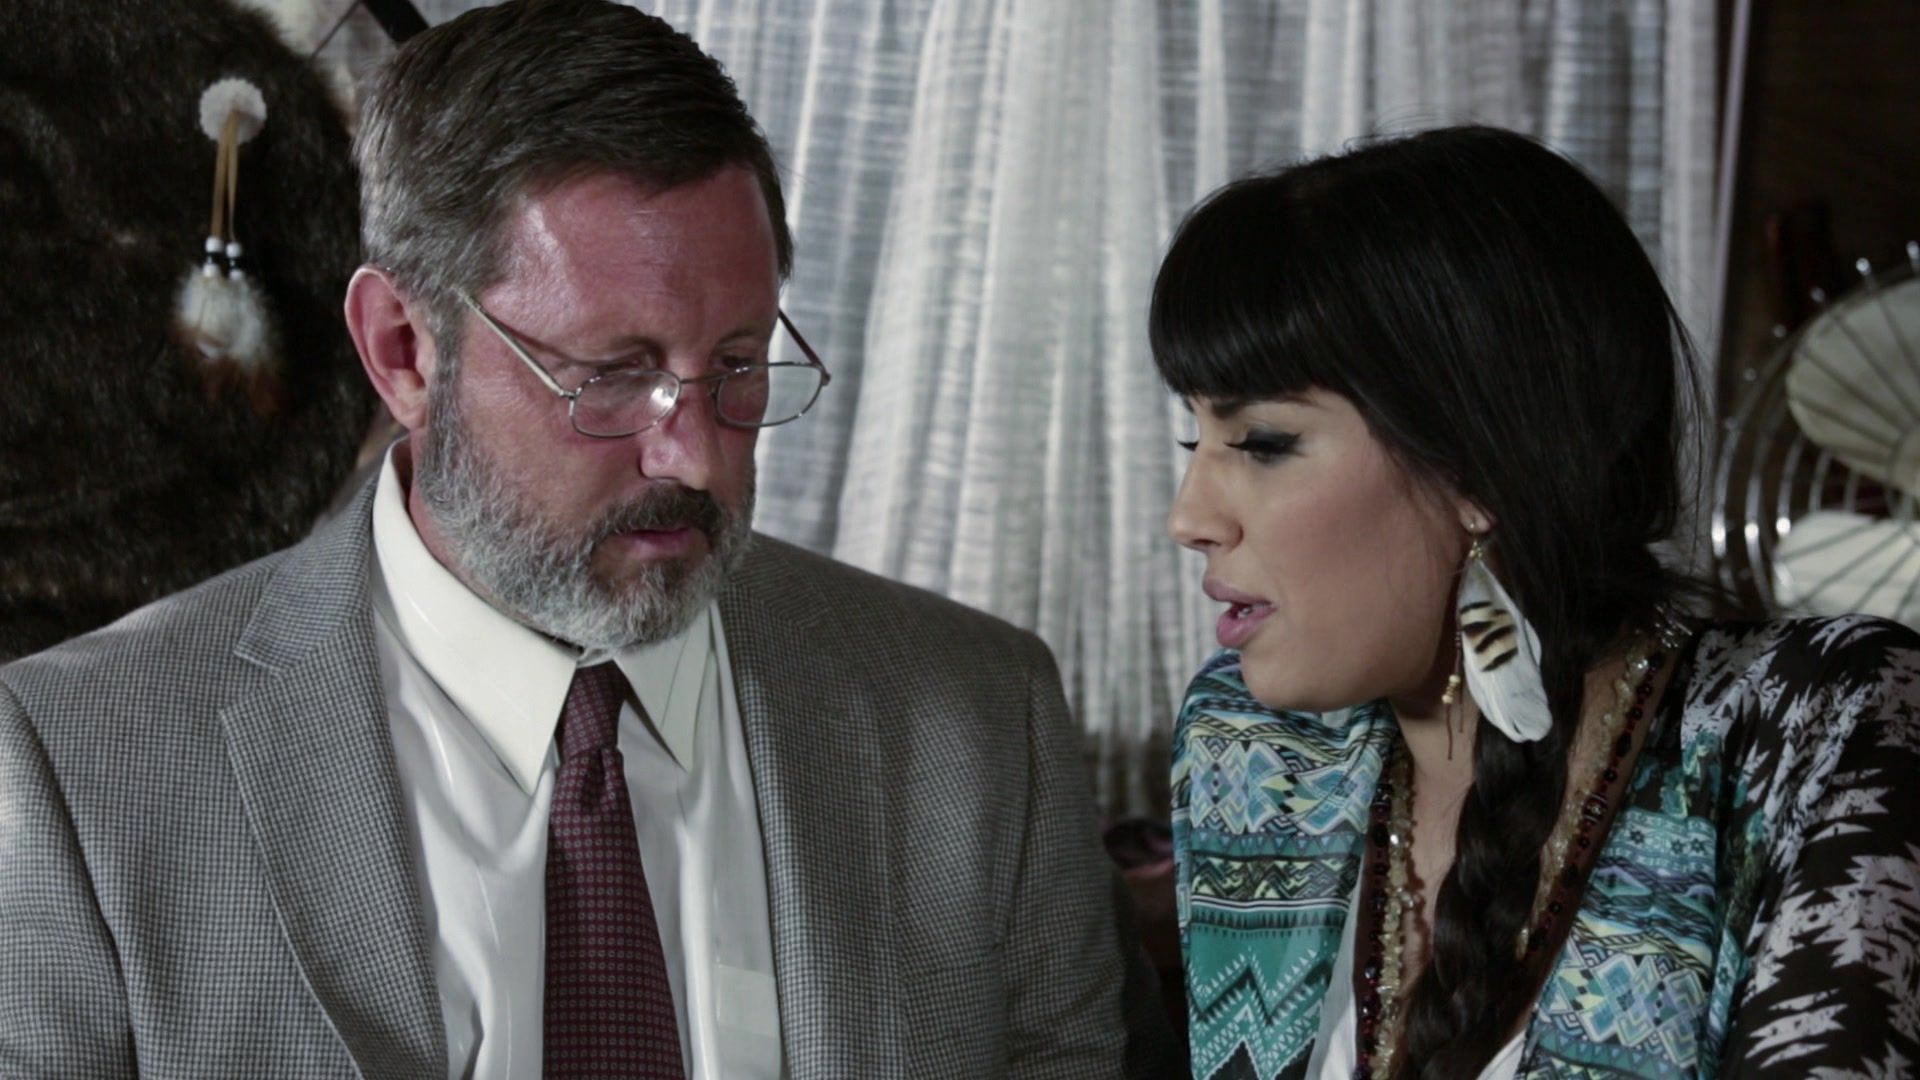 Scene with Brad Armstrong and Mercedes Carrera - image 3 out of 20